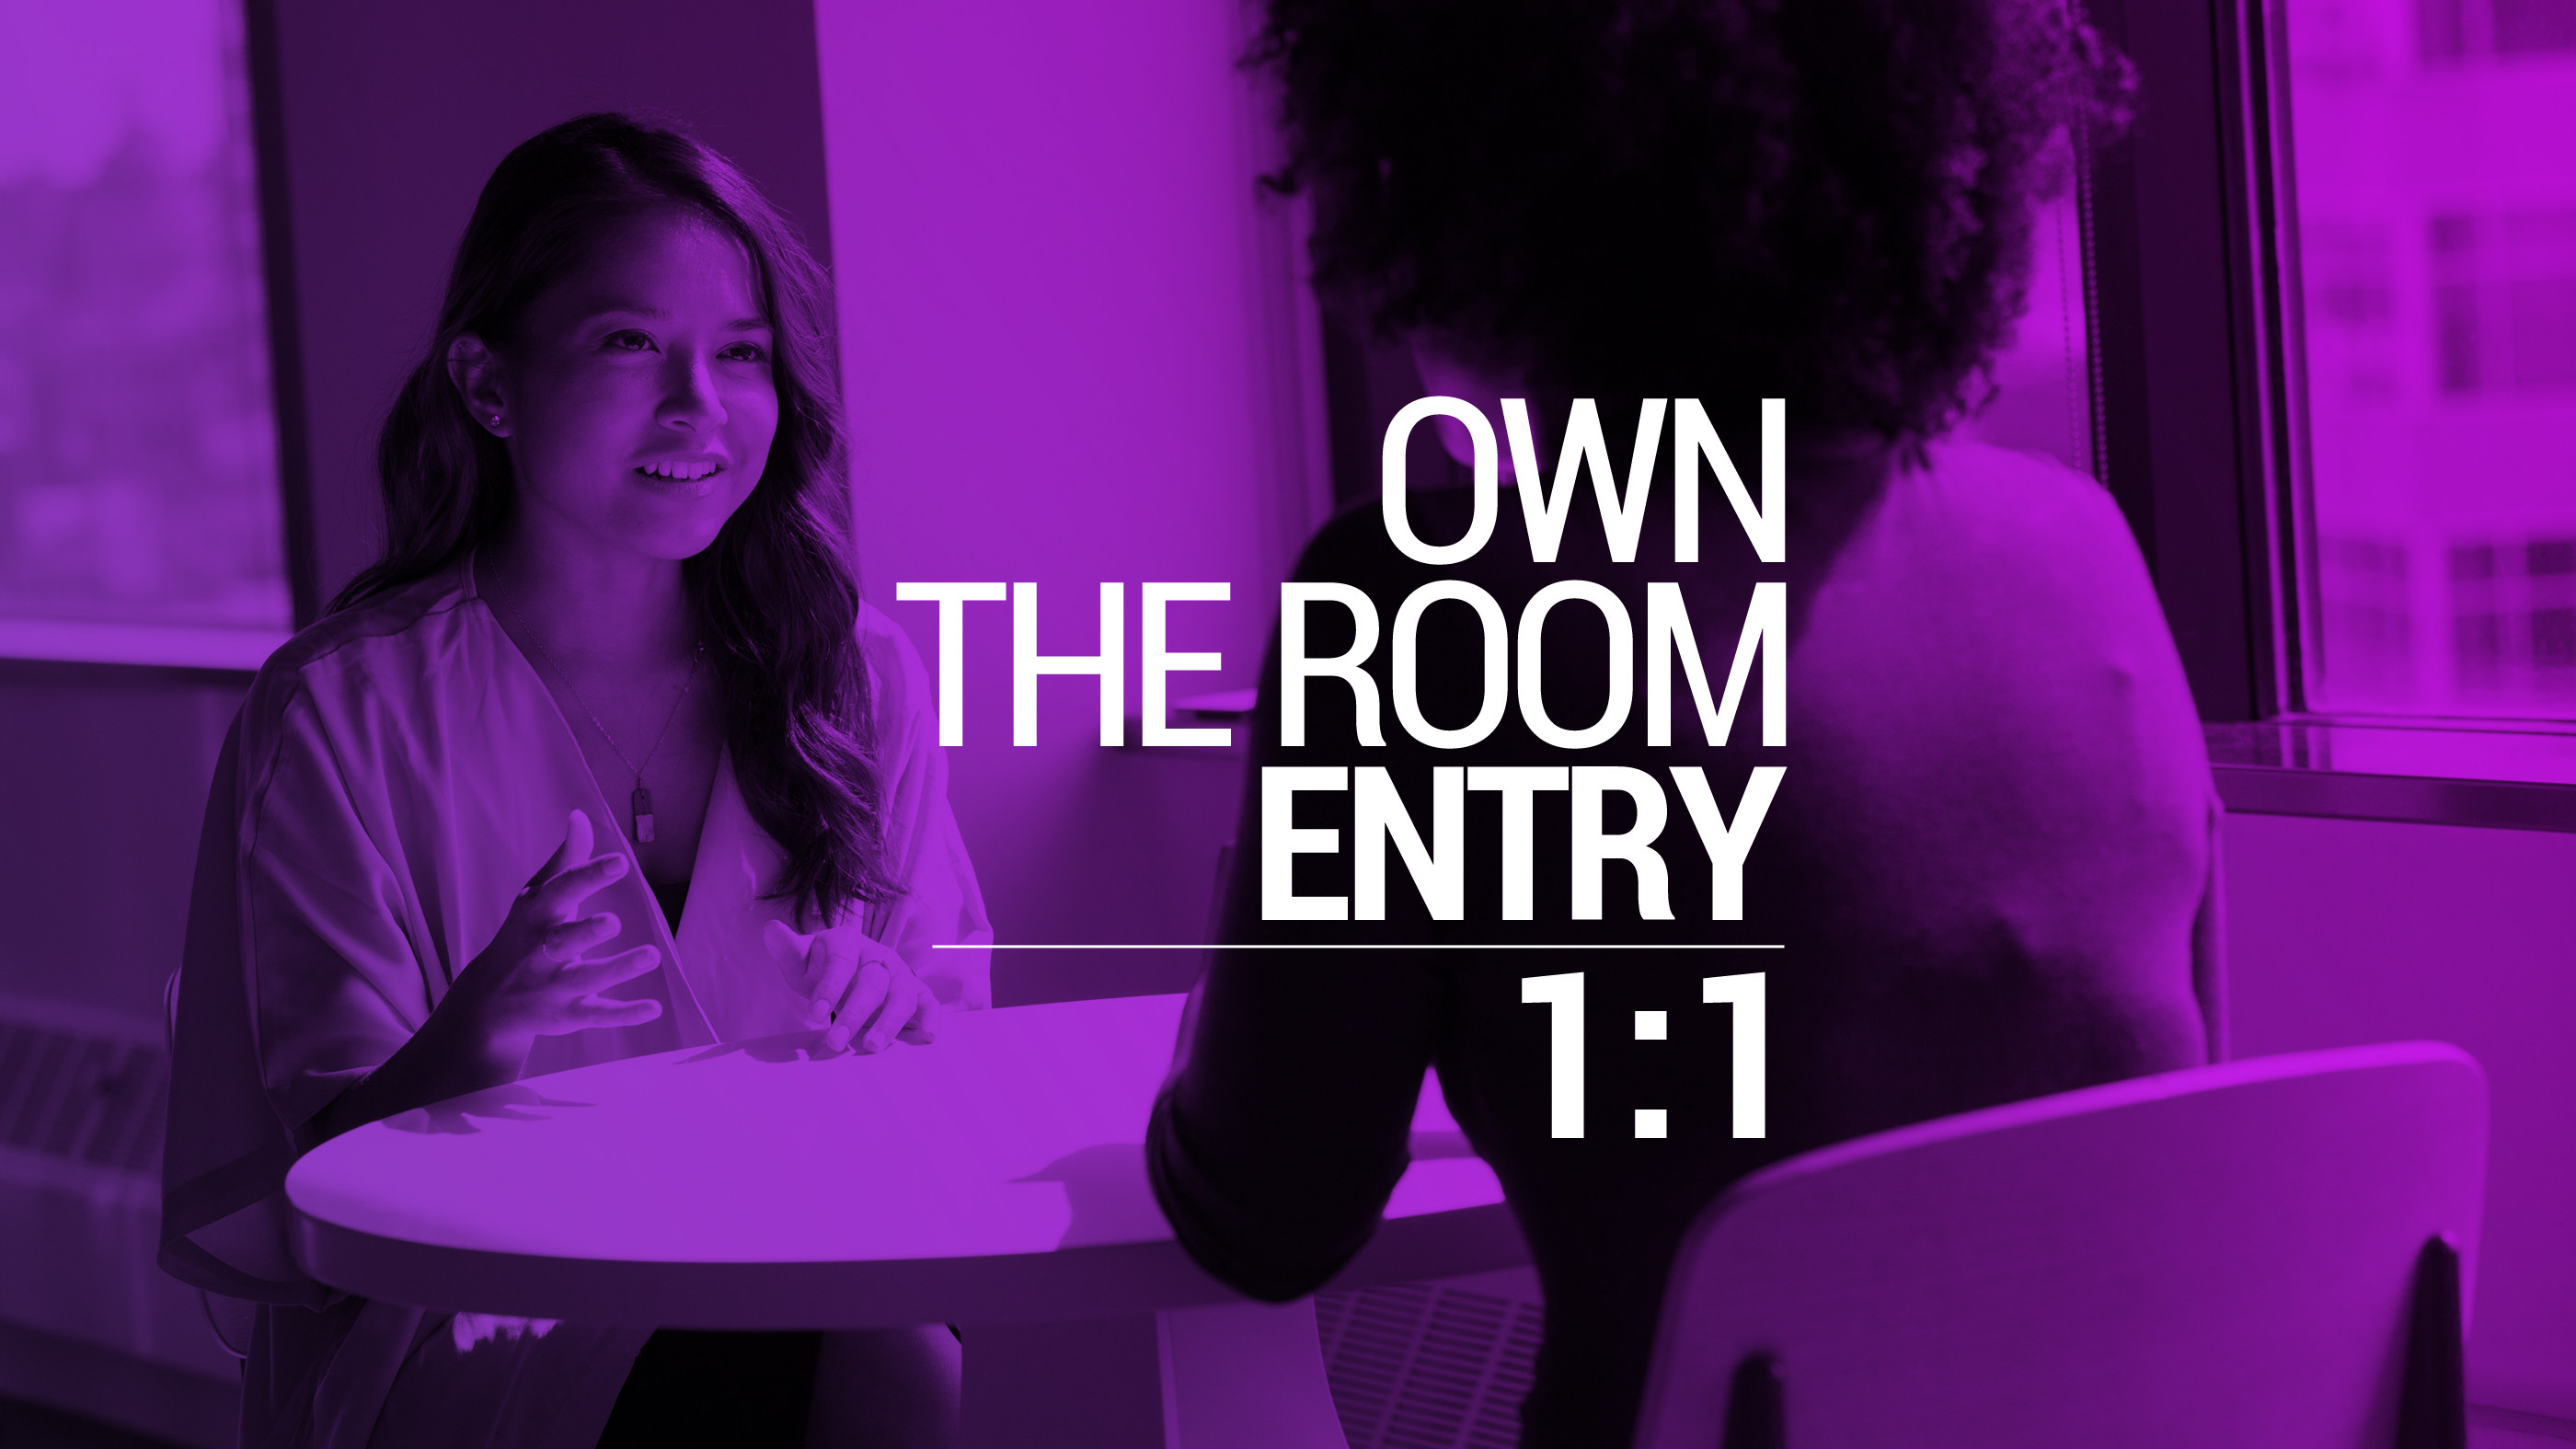 OWN THE ROOM ENTRY   1:1